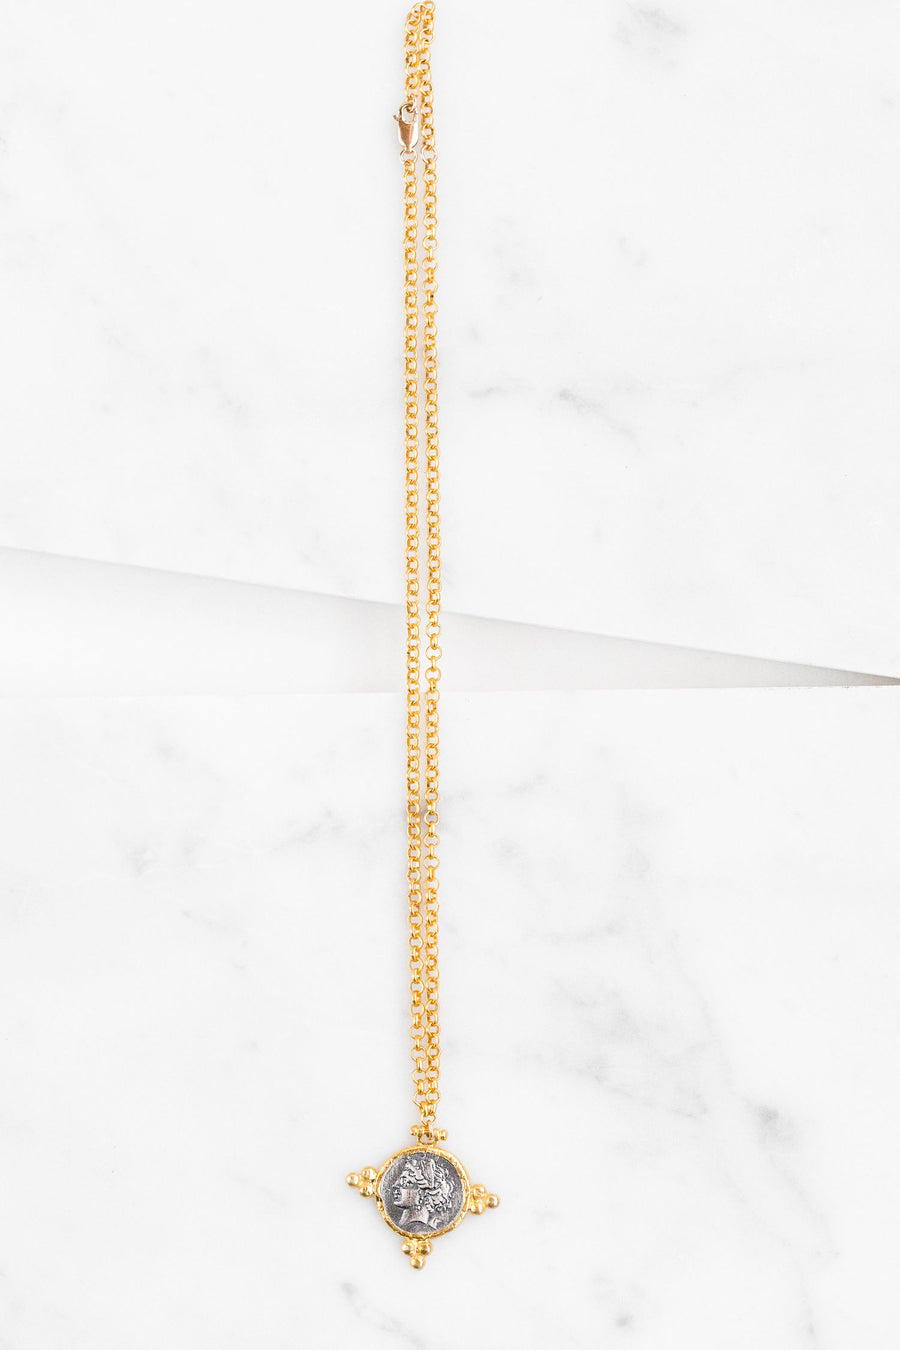 Find the perfect necklace you're looking for from Charme Silkiner! This beautiful 14K Gold Chain Necklace with a replica Roman medallion is perfection. Great for layering or wearing alone the Dior Necklace is the perfect piece of unique jewelry that everyone should own.